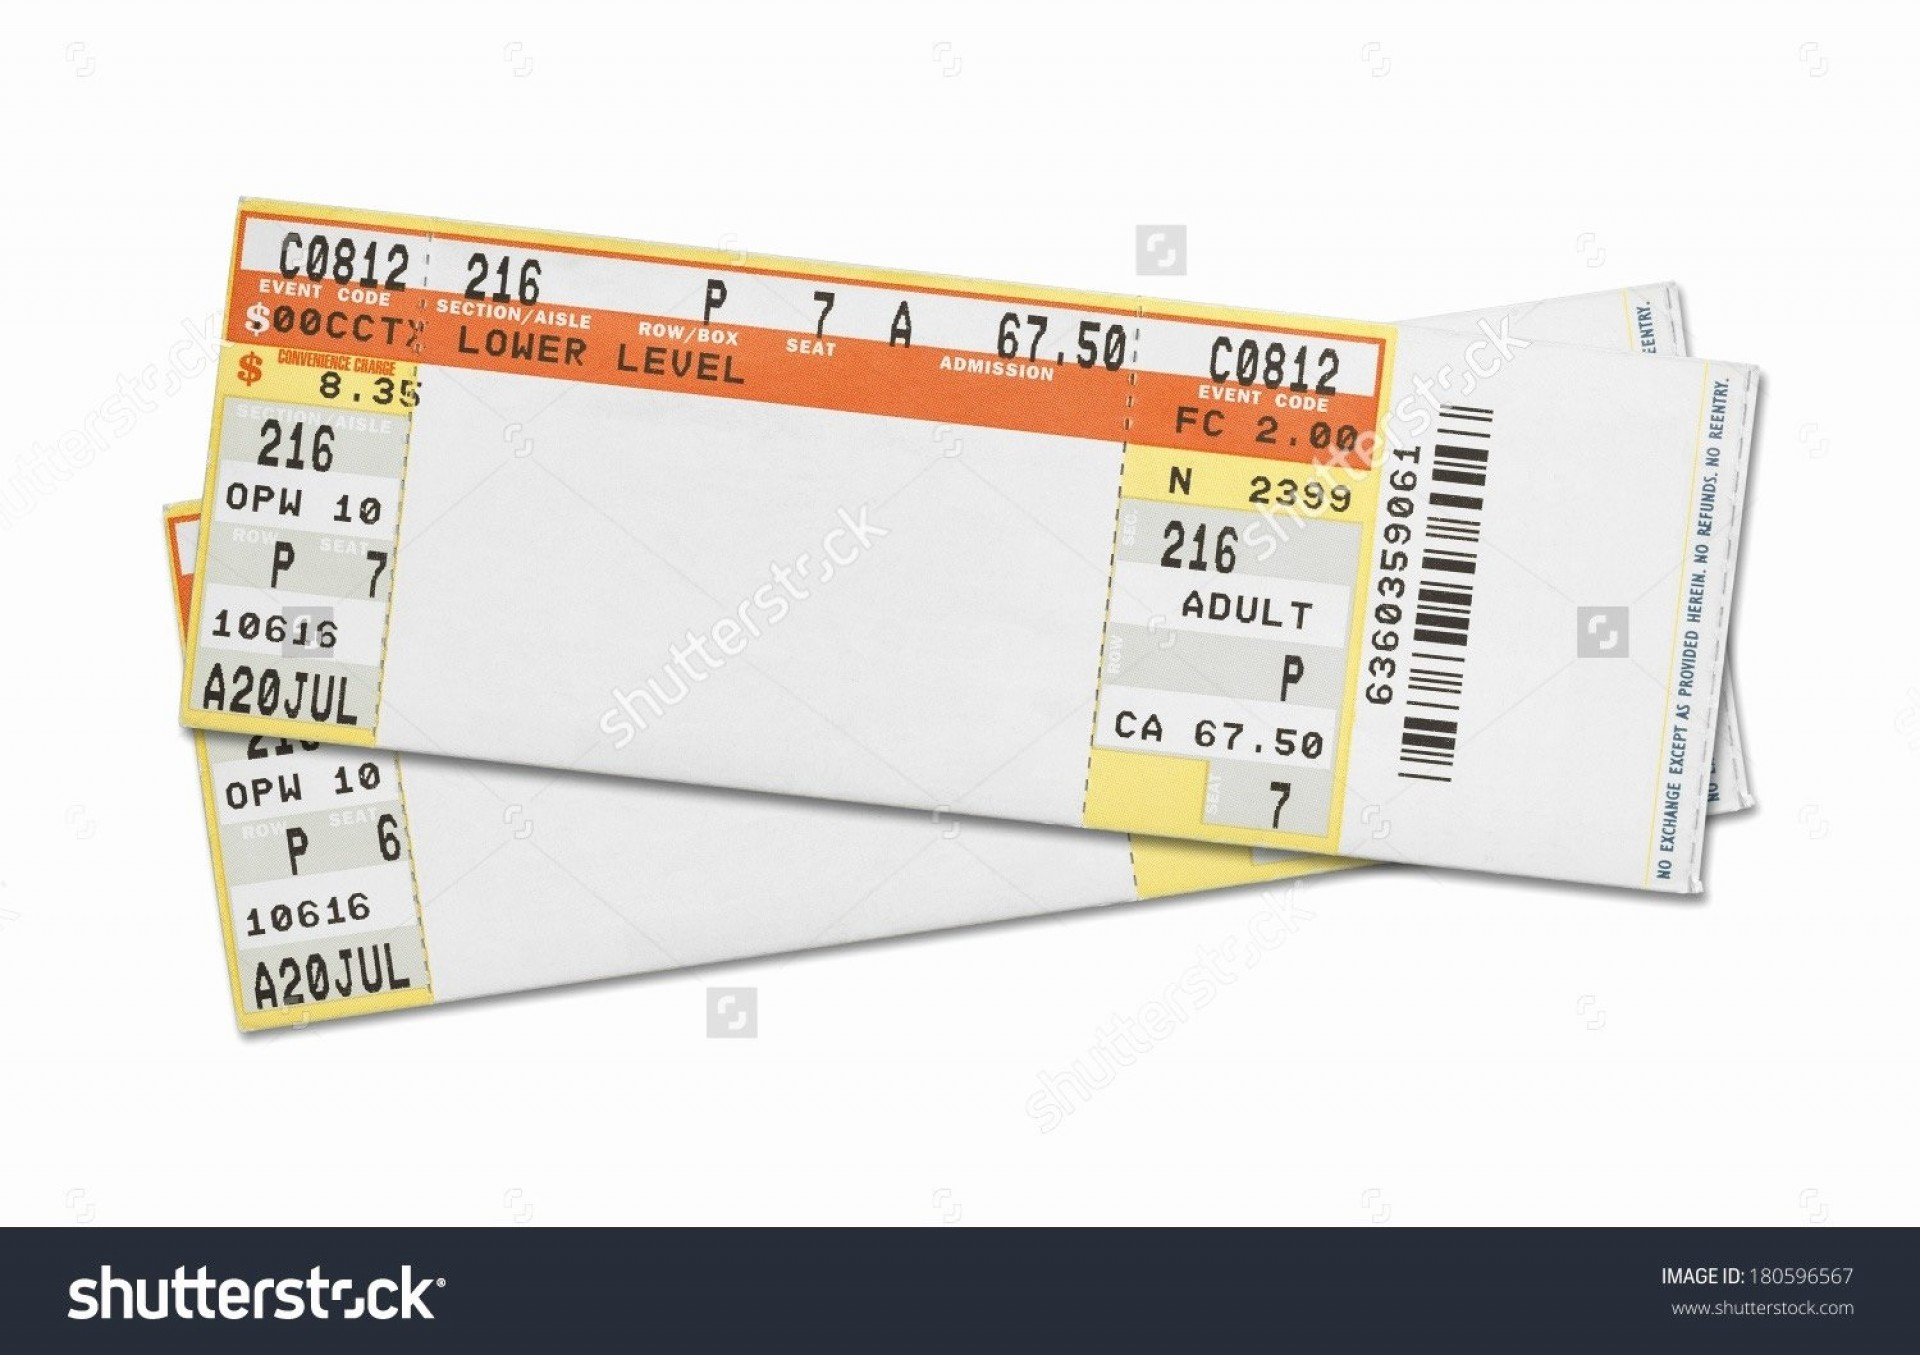 004 Striking Free Concert Ticket Printable Highest Clarity  Template For Gift1920